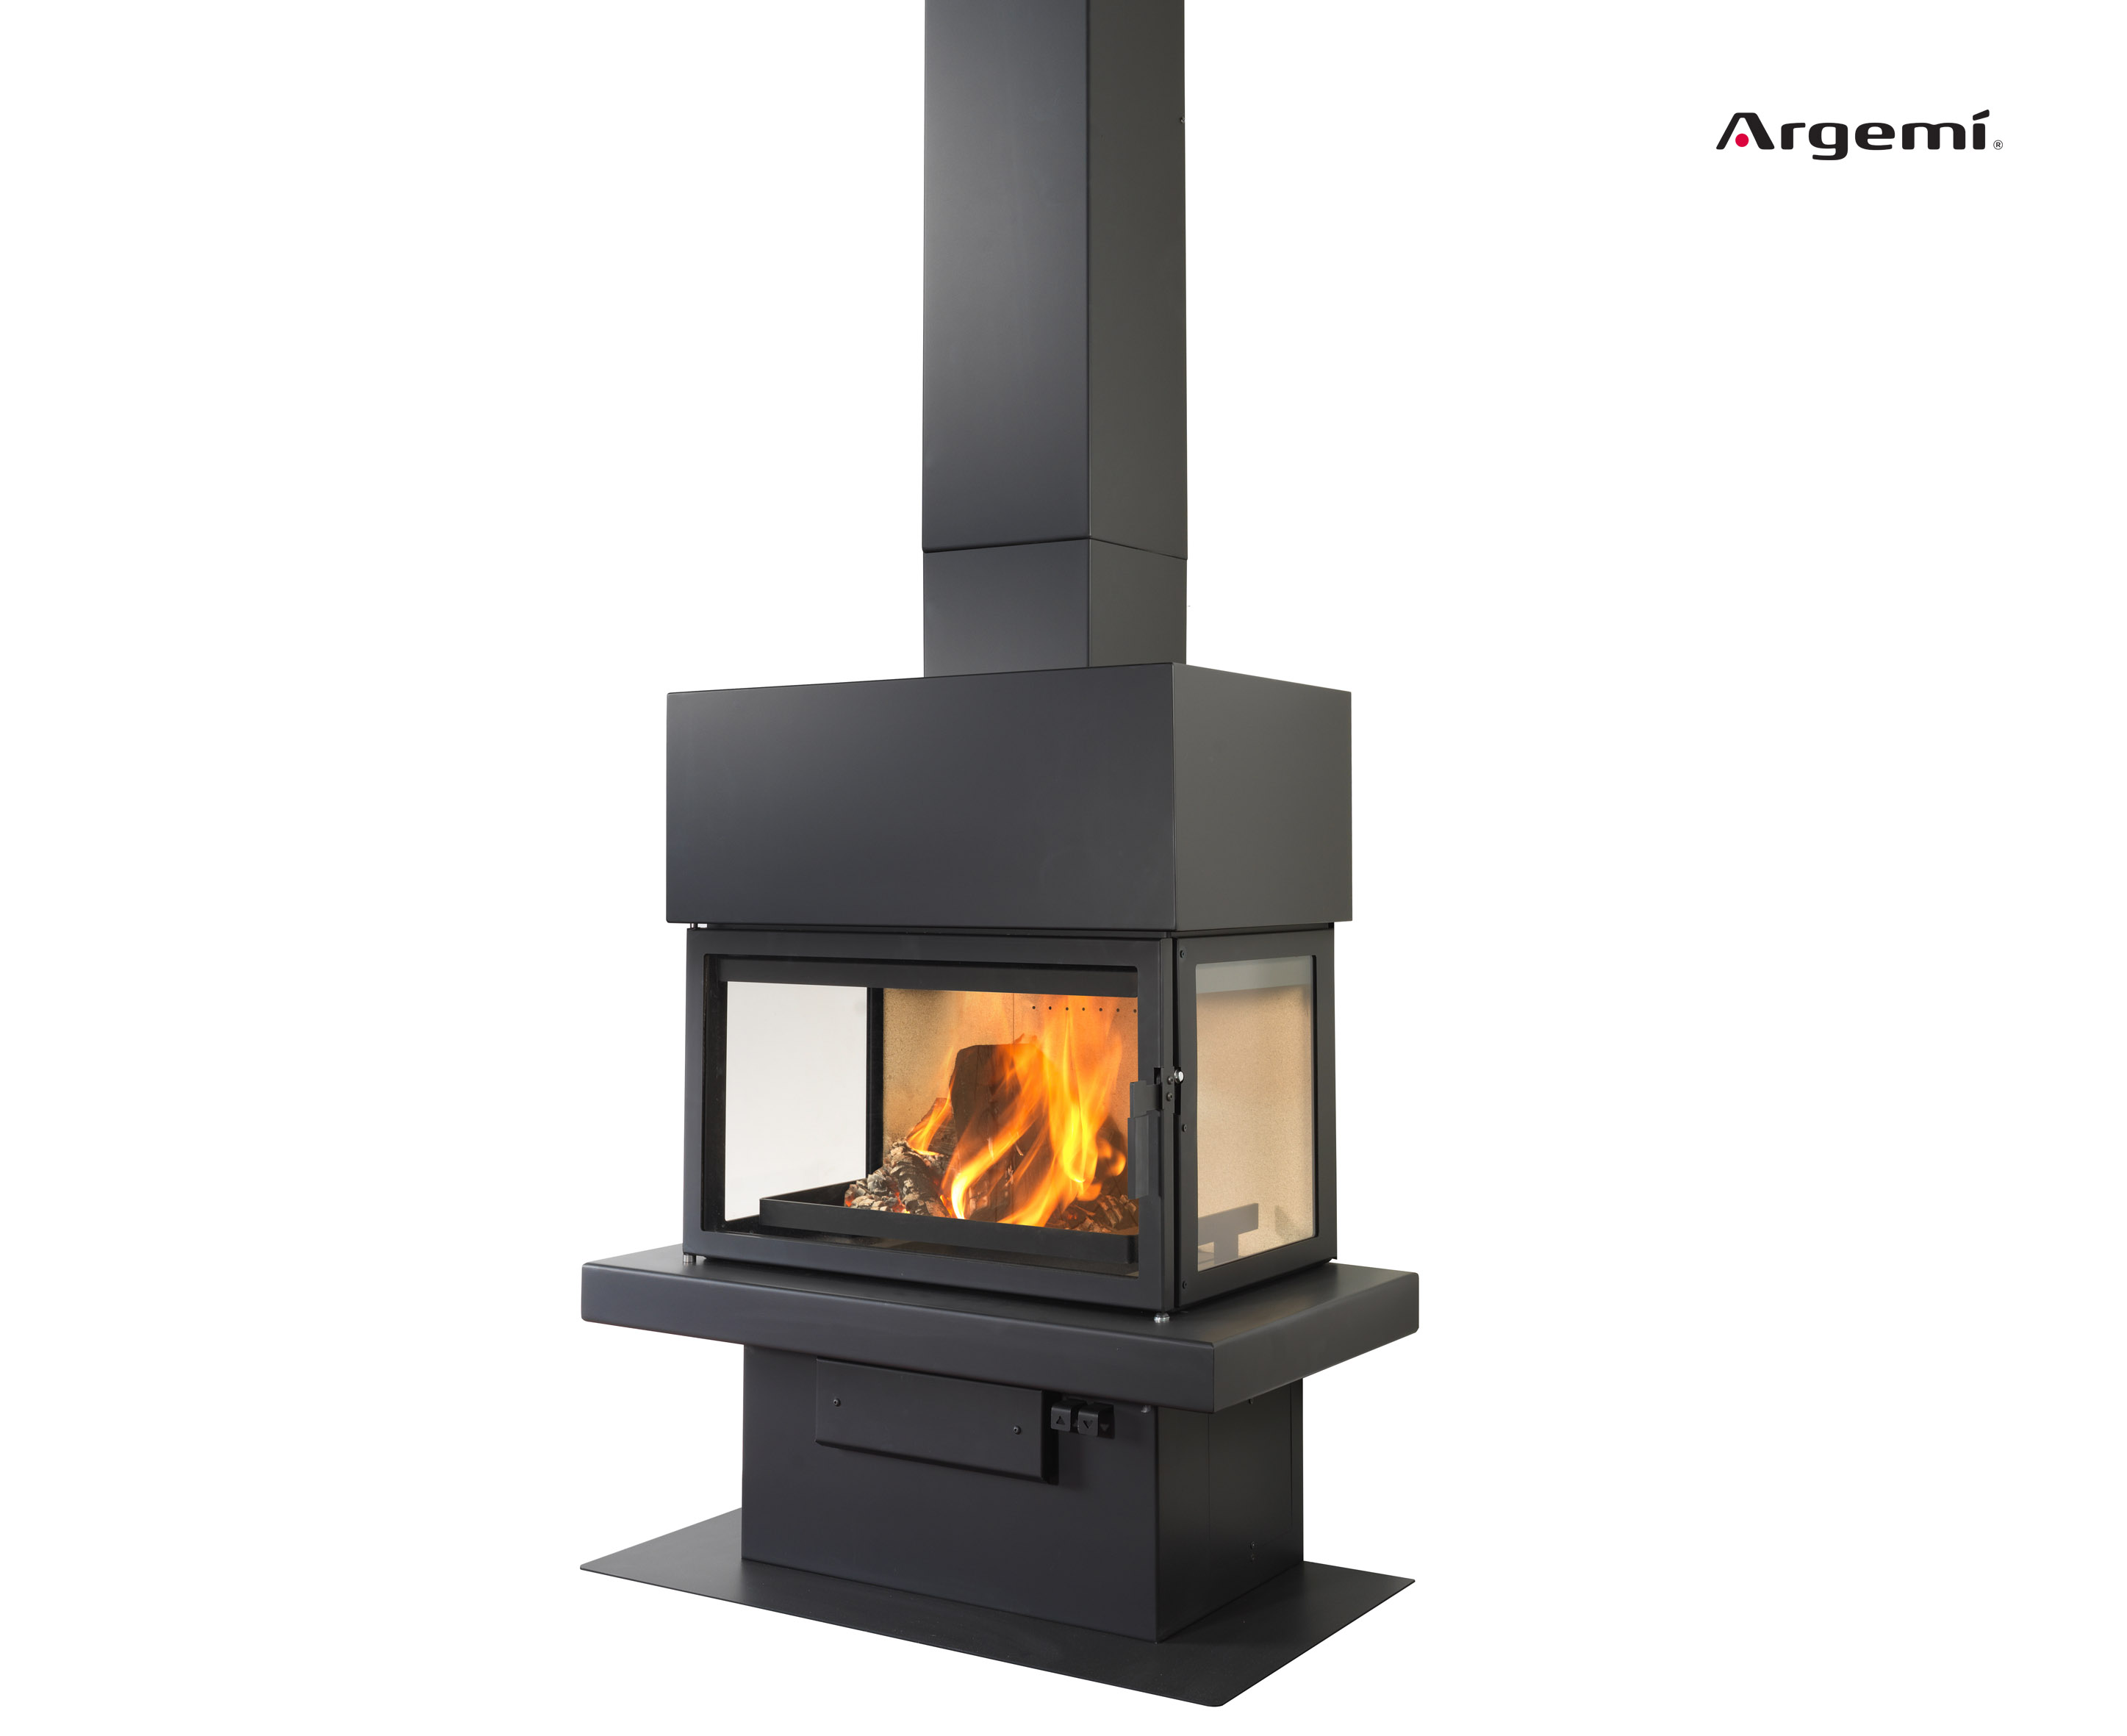 Ll 15 c metal fireplace argemi prefabricatsargemi for Wood stove insert for prefab fireplace